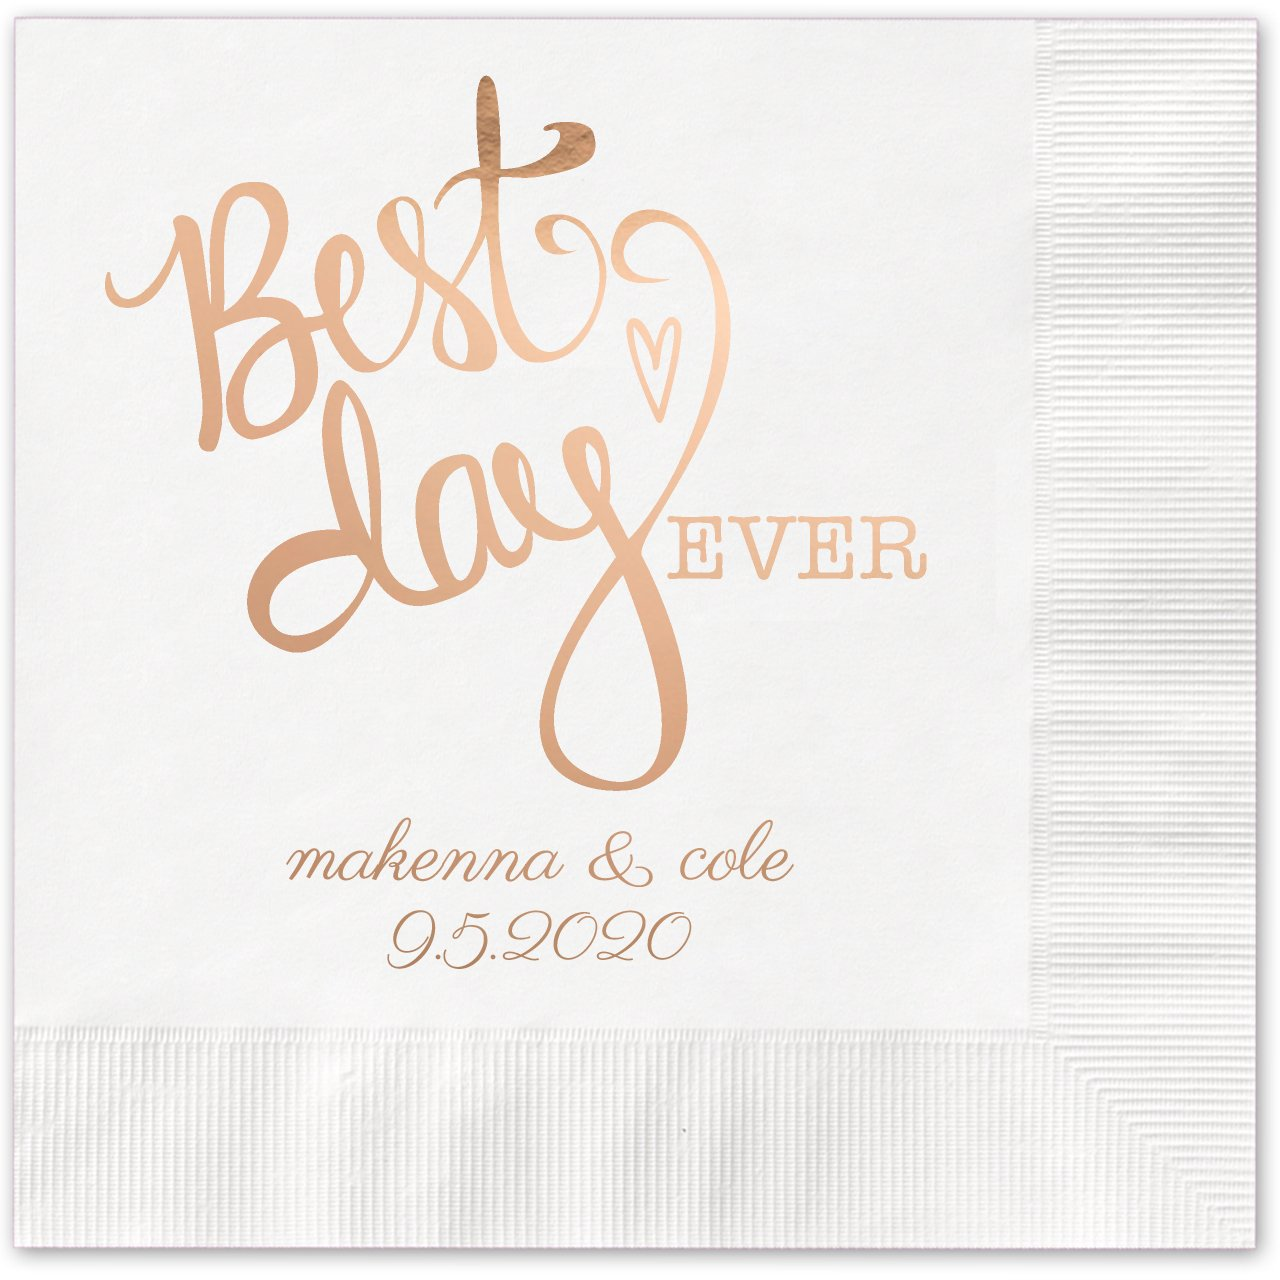 Best Day Ever Heart Personalized Beverage Cocktail Napkins - 100 Custom Printed White Paper Napkins with choice of foil